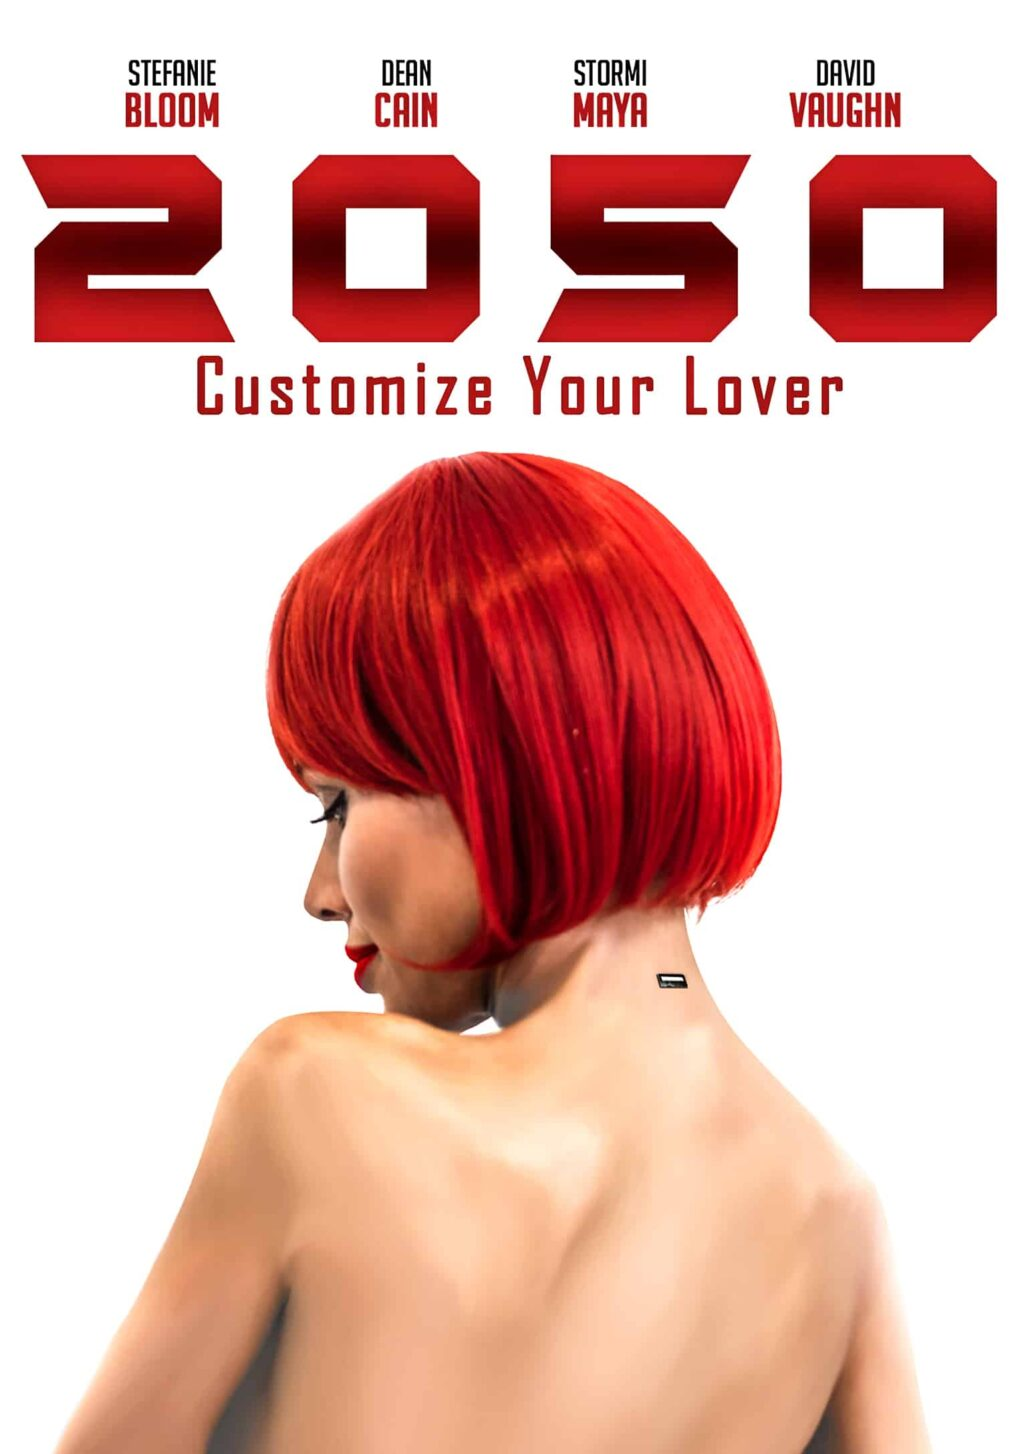 2050 Key Art 1024x1454 - Build Your Perfect Girlfriend in Clip from Sex-Bot Horror Satire 2050